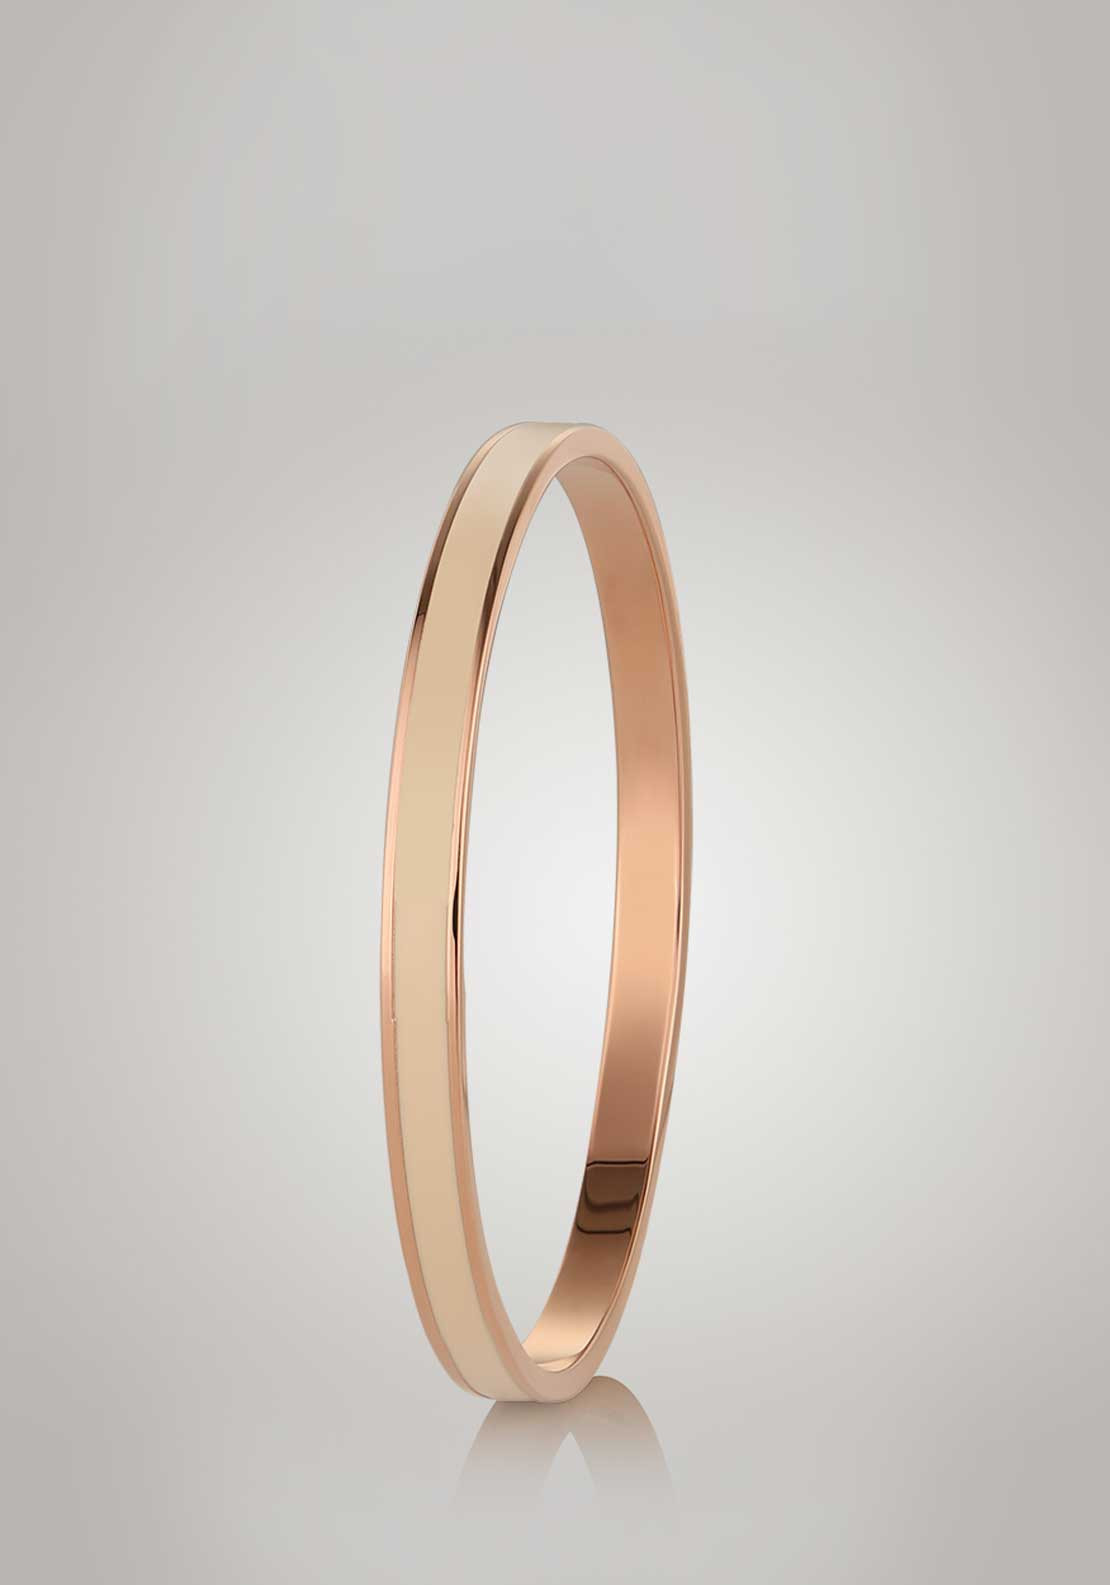 Newbridge Silverware Small Cream Bangle, Rose Gold